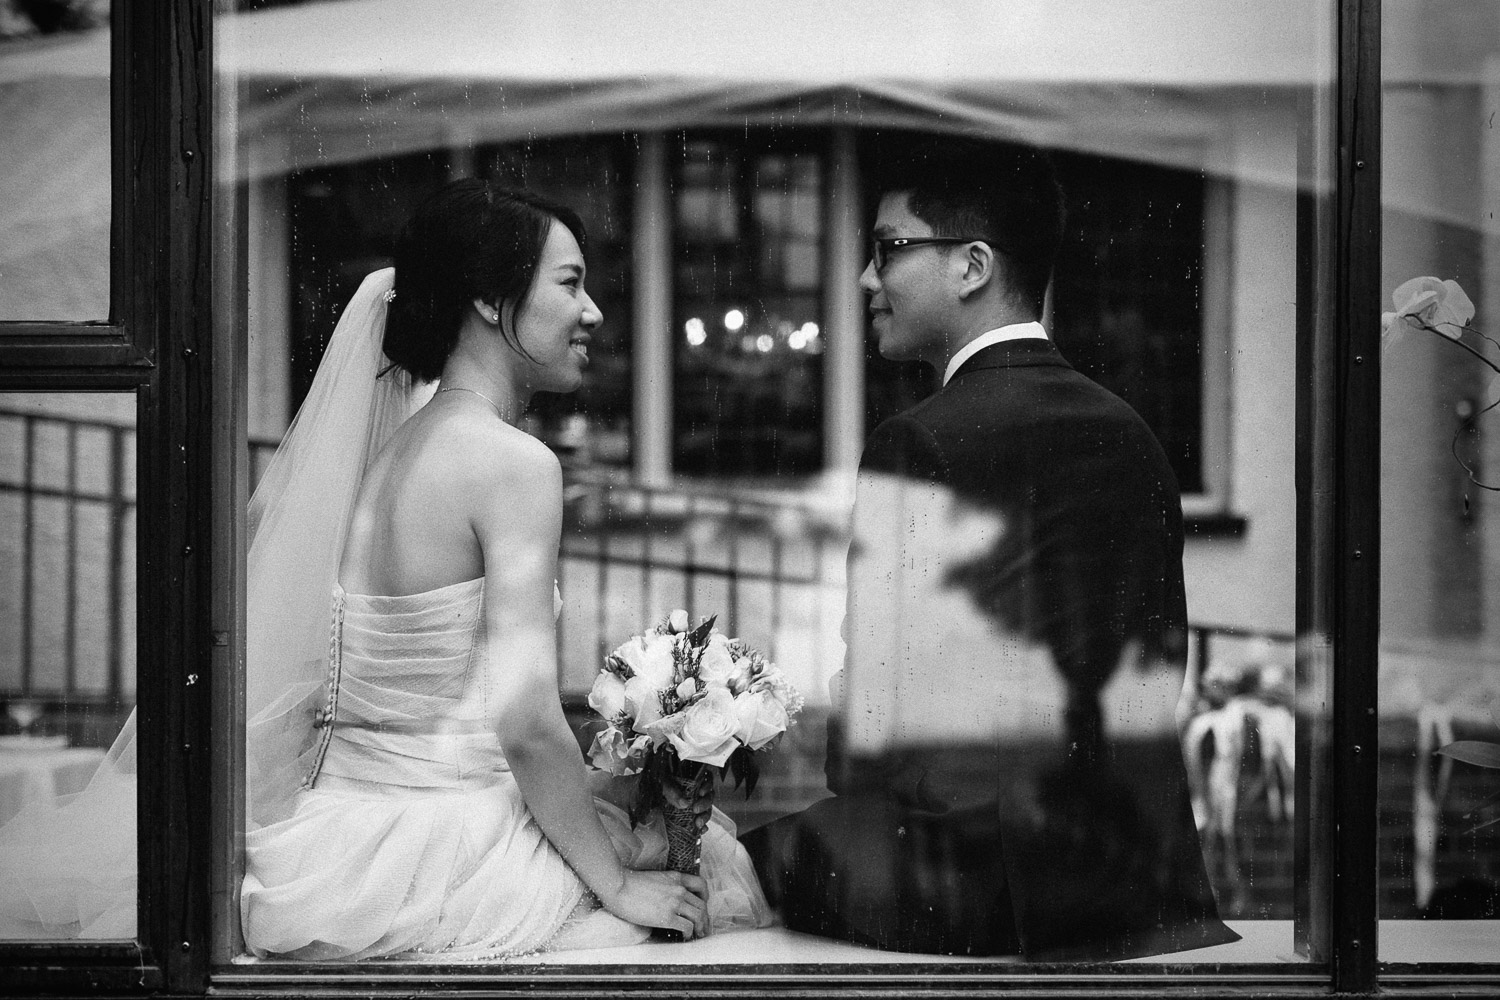 black and white wedding photography in vancouver bc at brockhouse restaurant